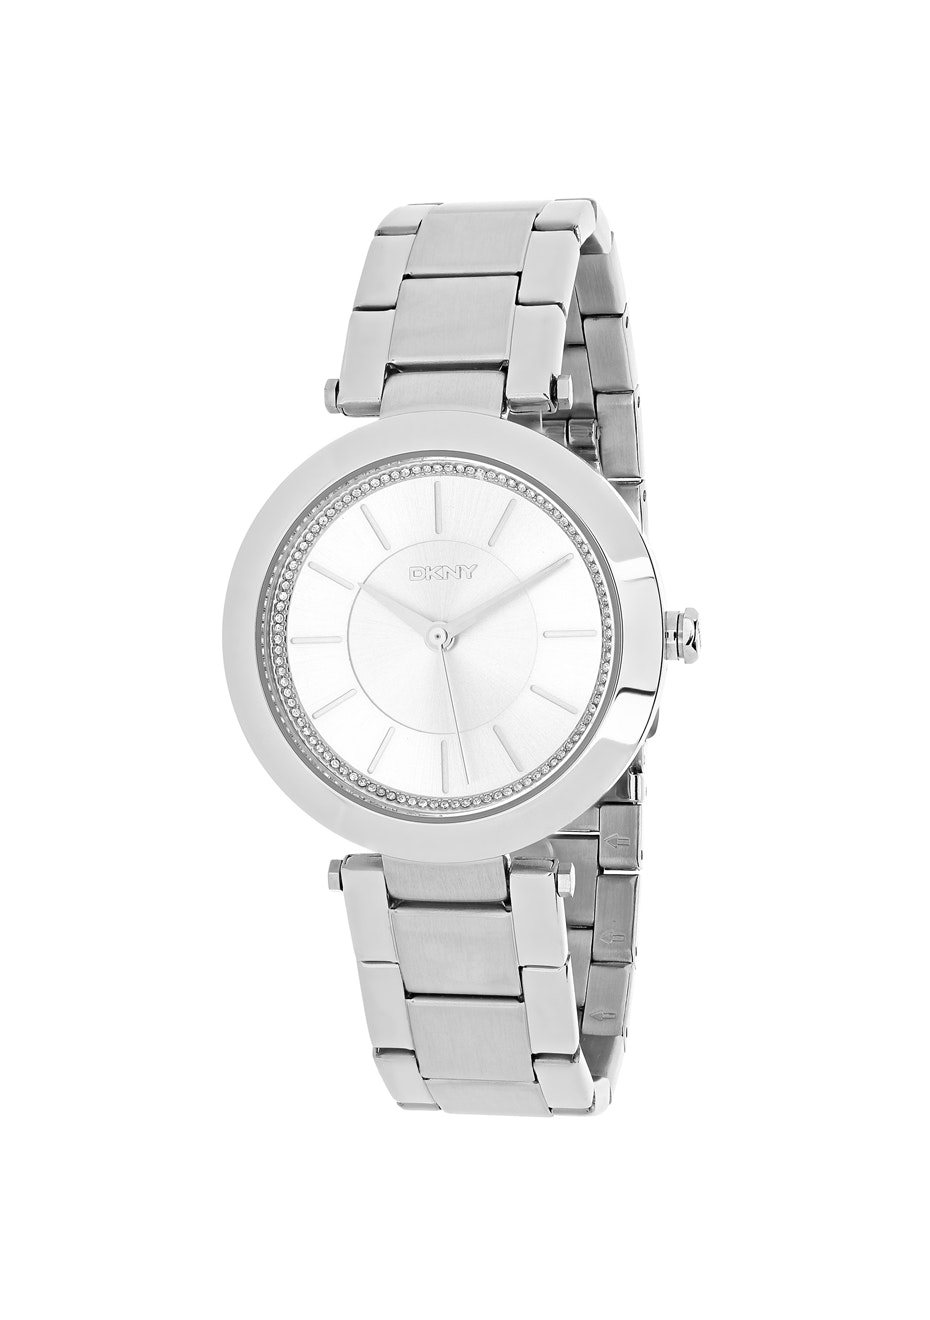 DKNY Women's Stanhope - Silver/Silver